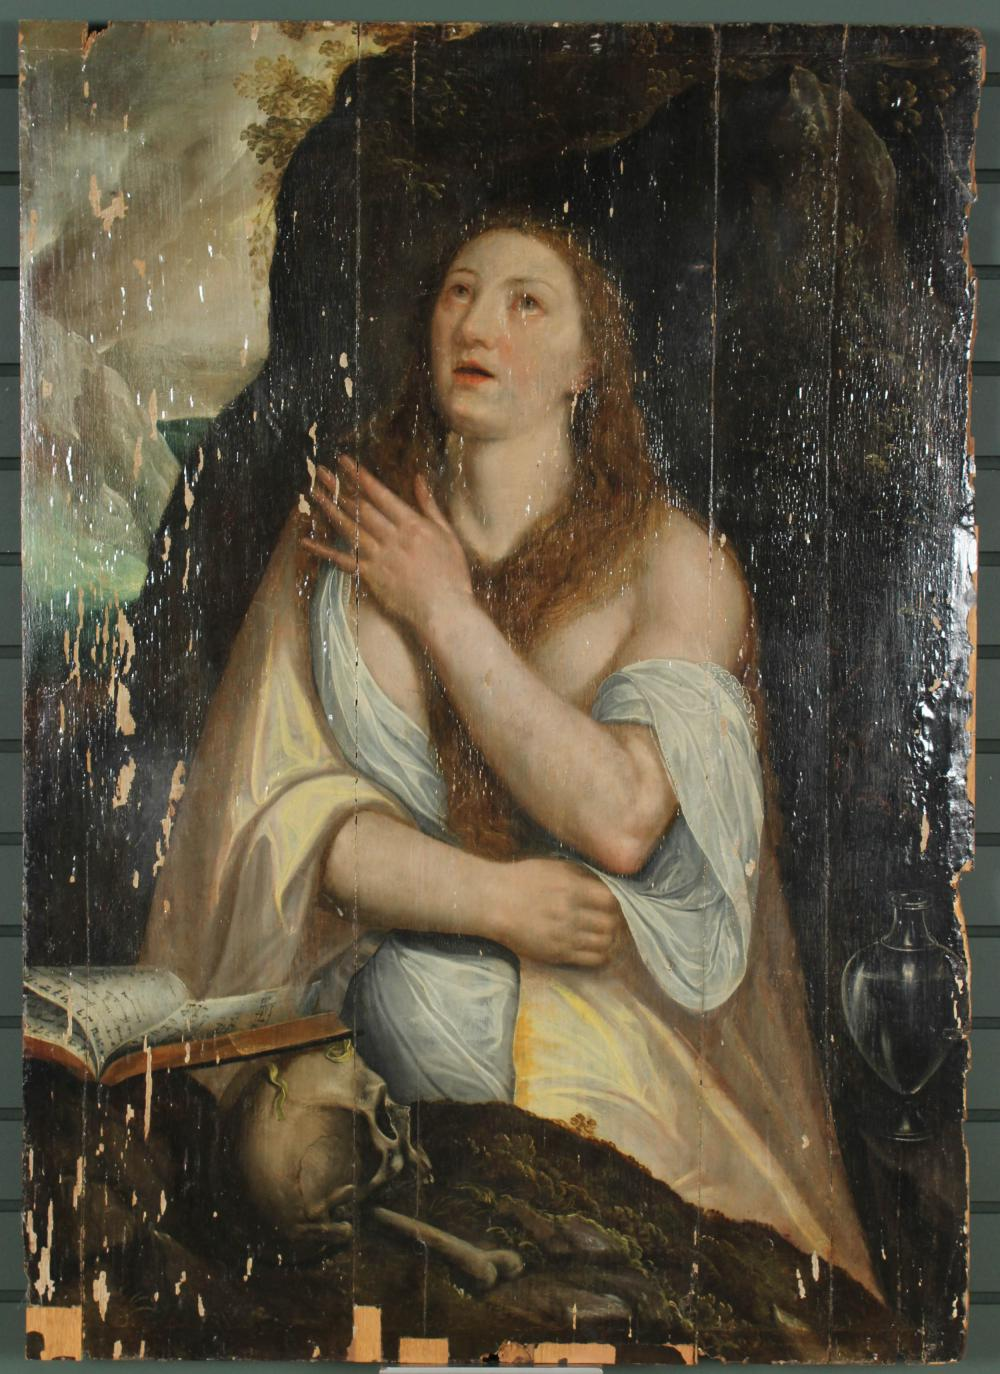 ANTIQUE CONTINENTAL MARY MAGDALENE PORTRAIT